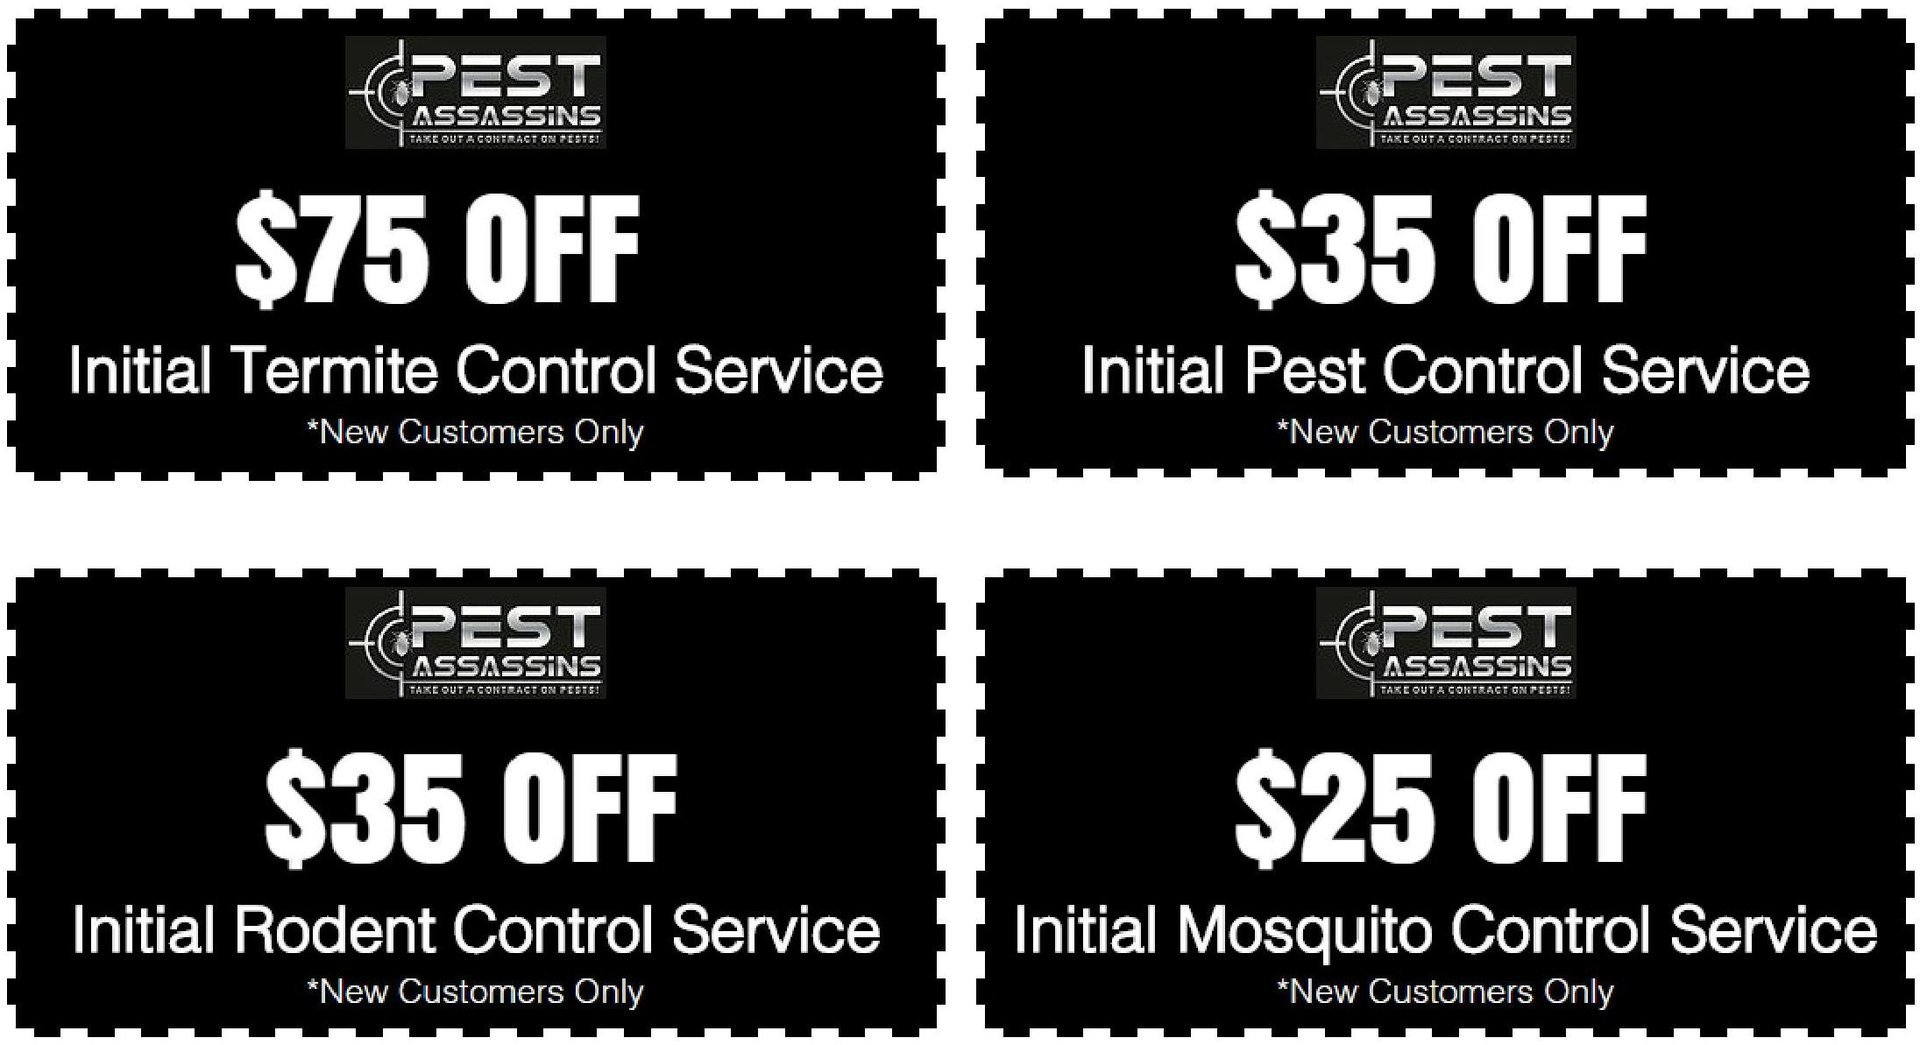 pest control coupons Mansfield North Attleboro Braintree